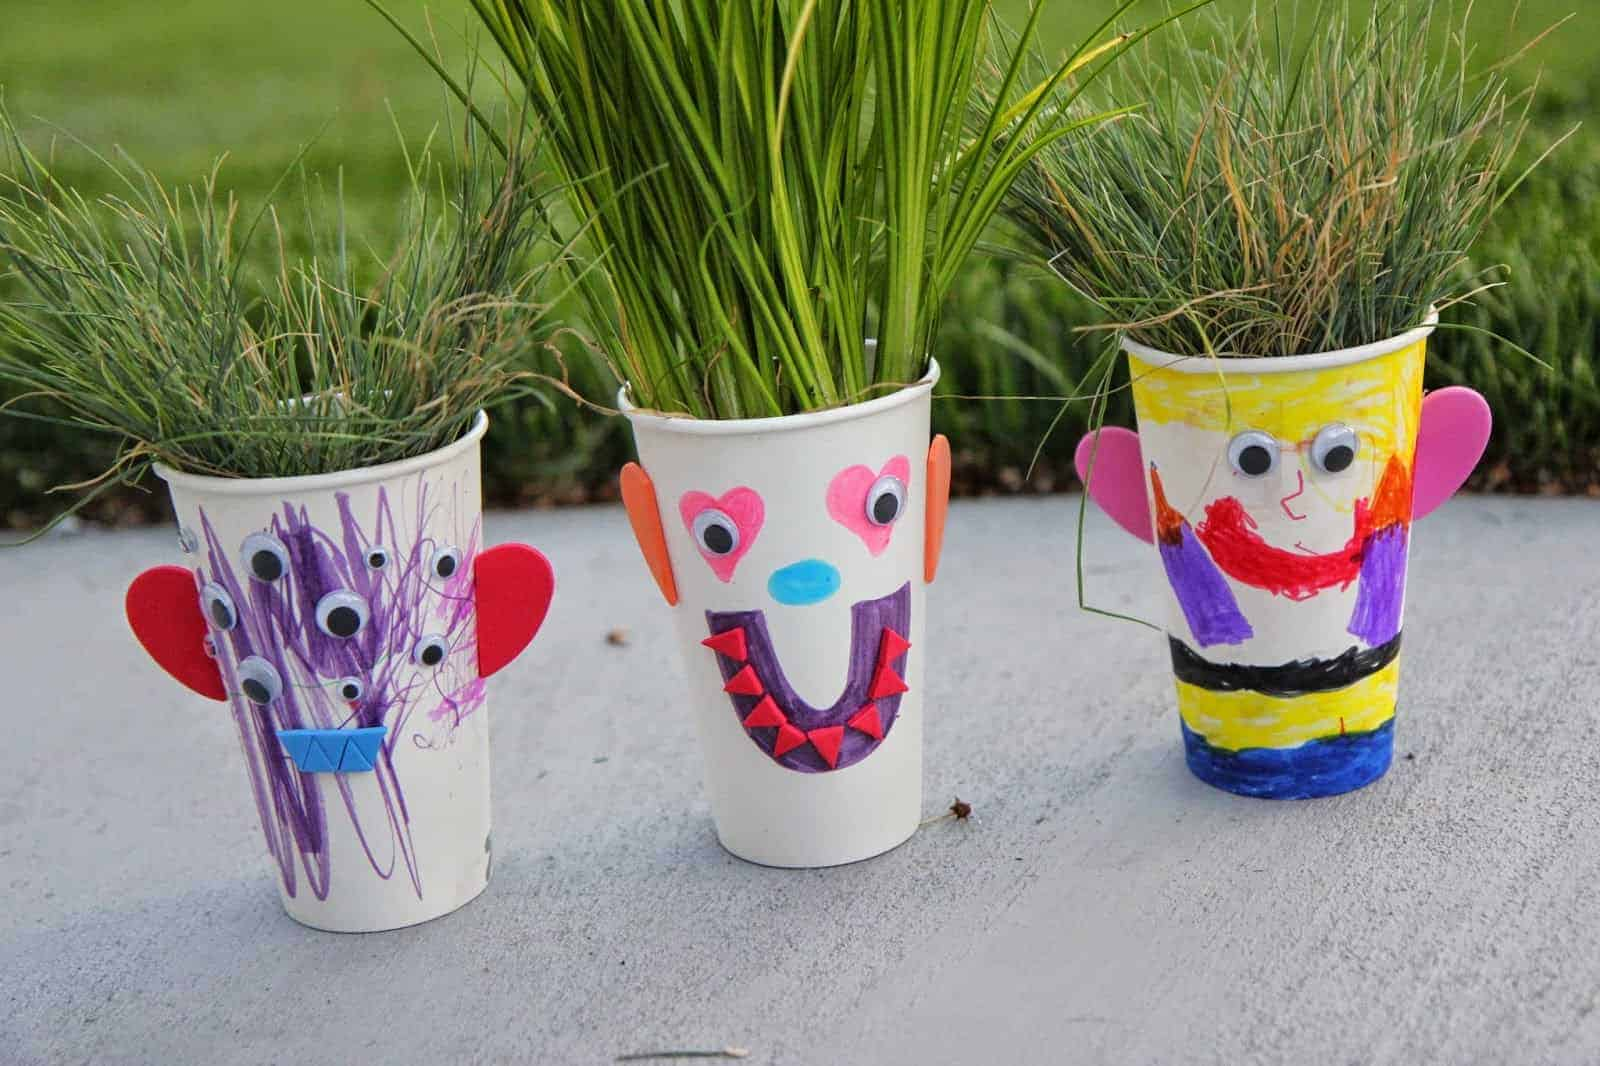 grass art project for kids